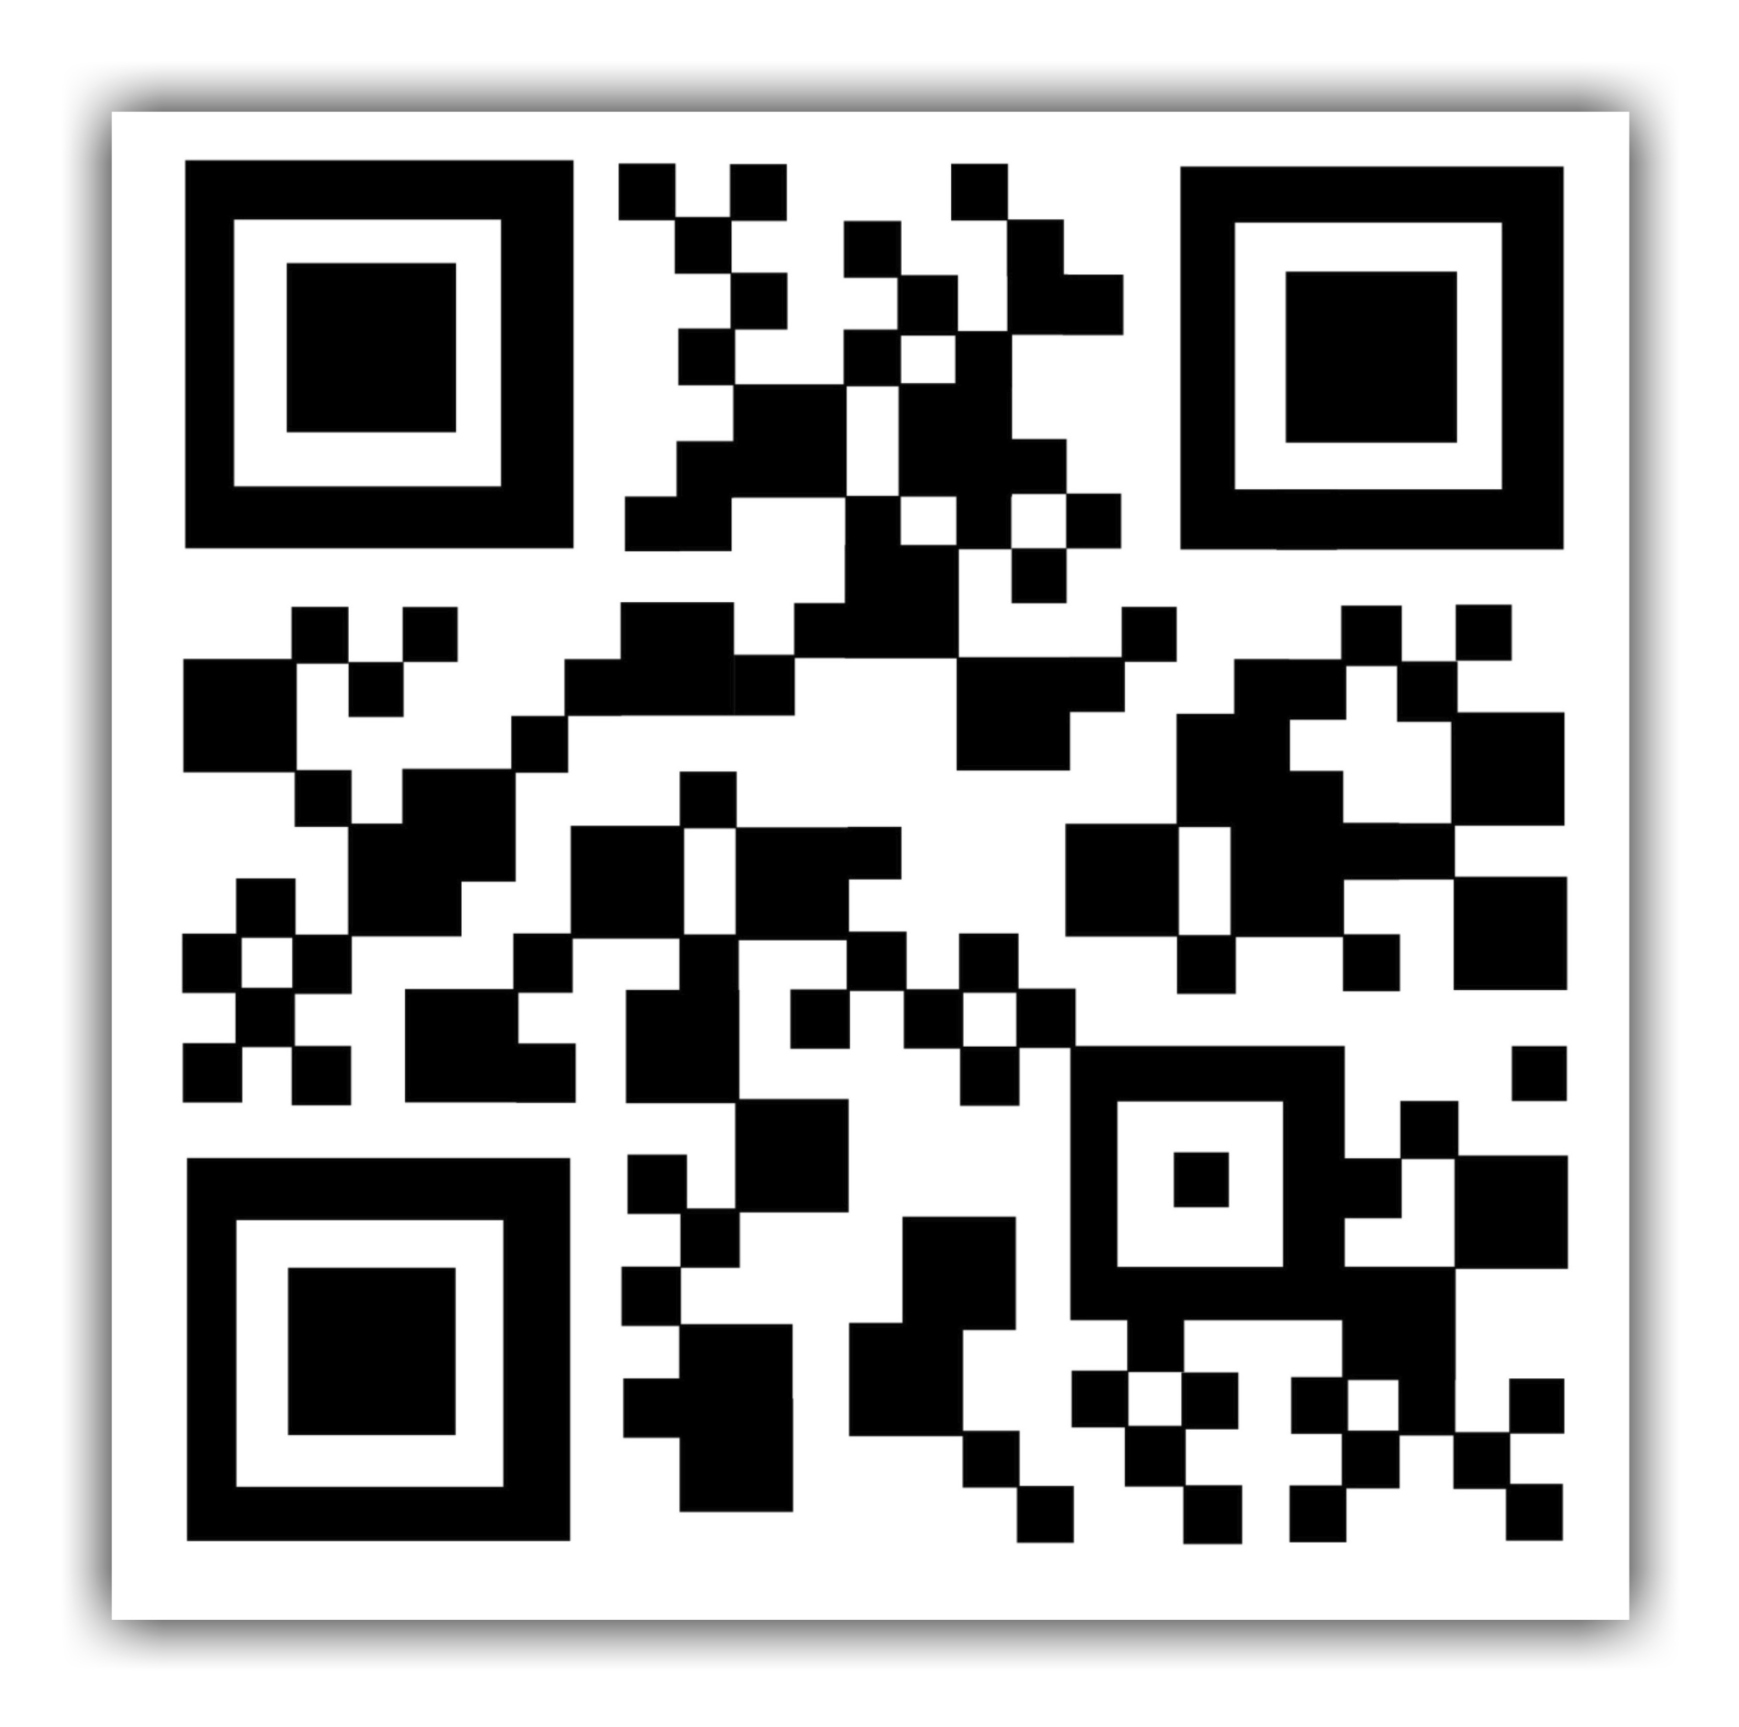 ticketmaster how to get qr code